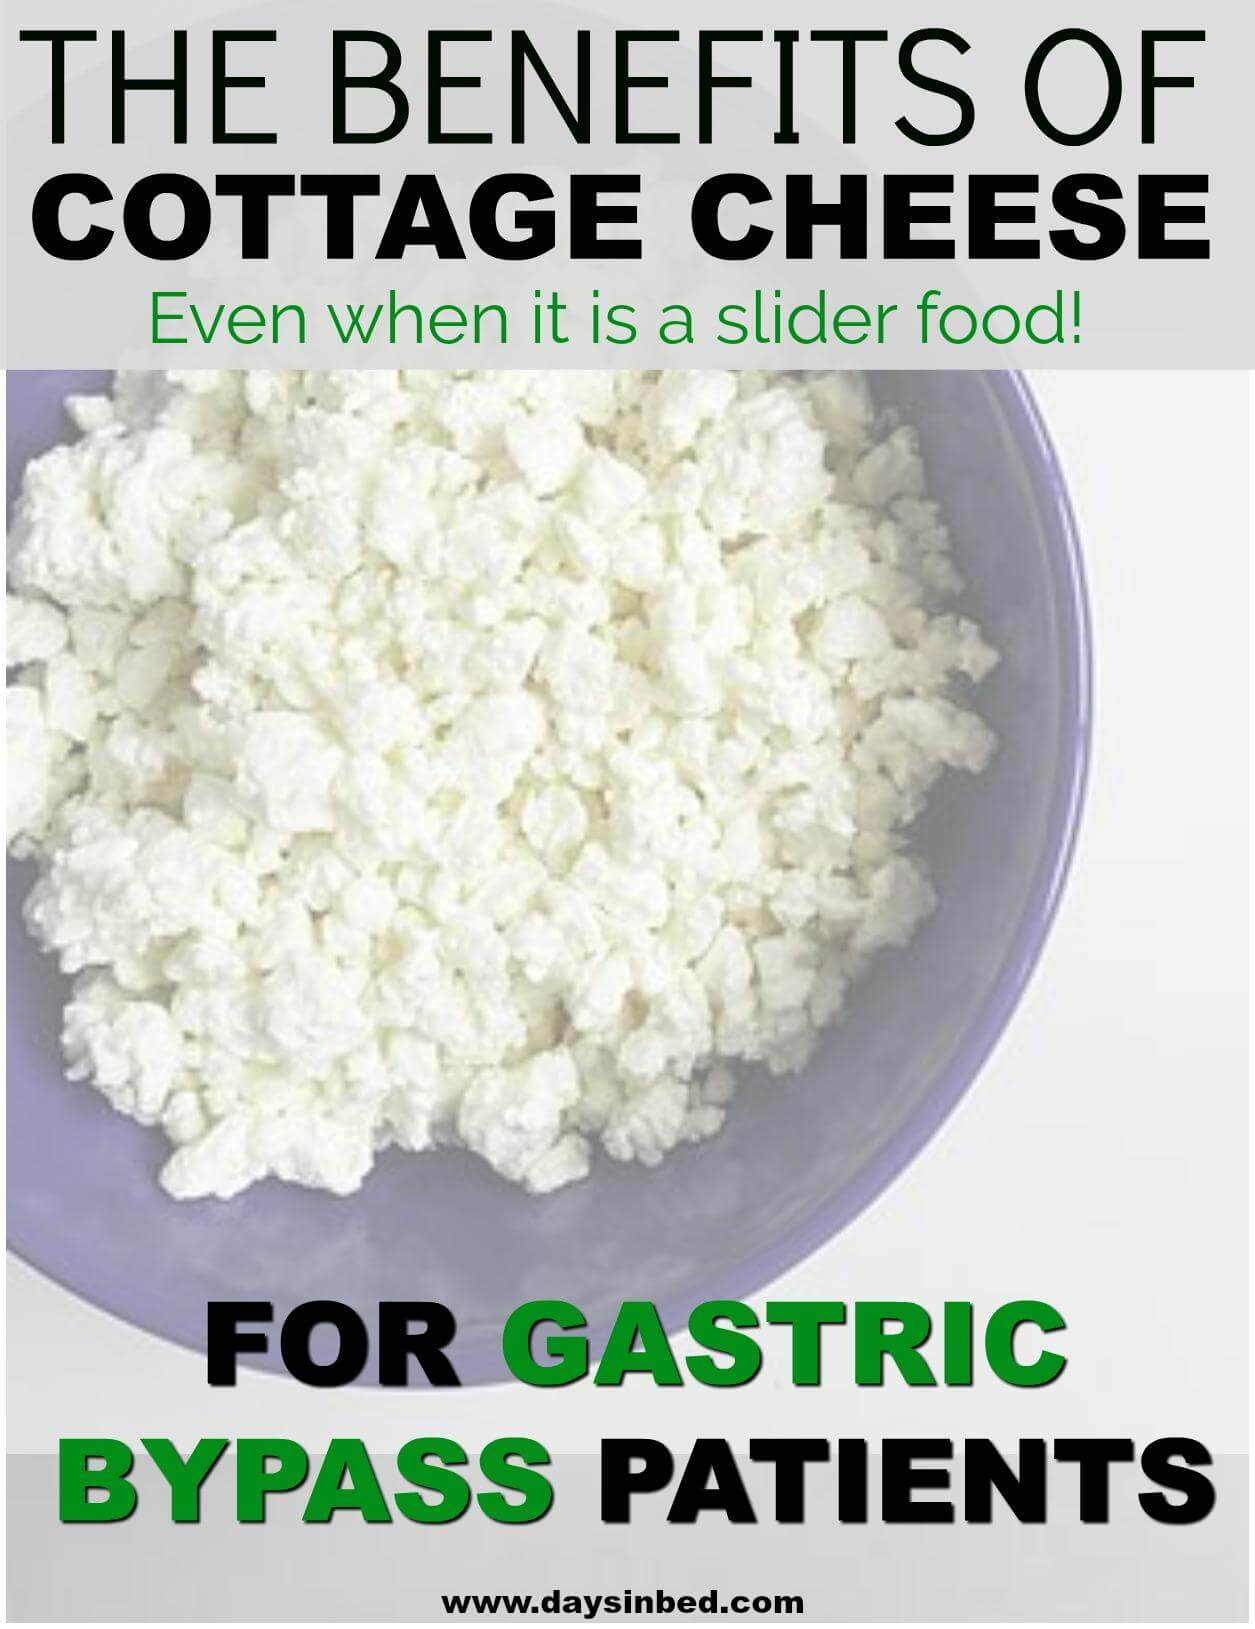 is cottage cheese a slider food and the benefits of protein for gastric bypass patients image of cottage cheese in a bowl